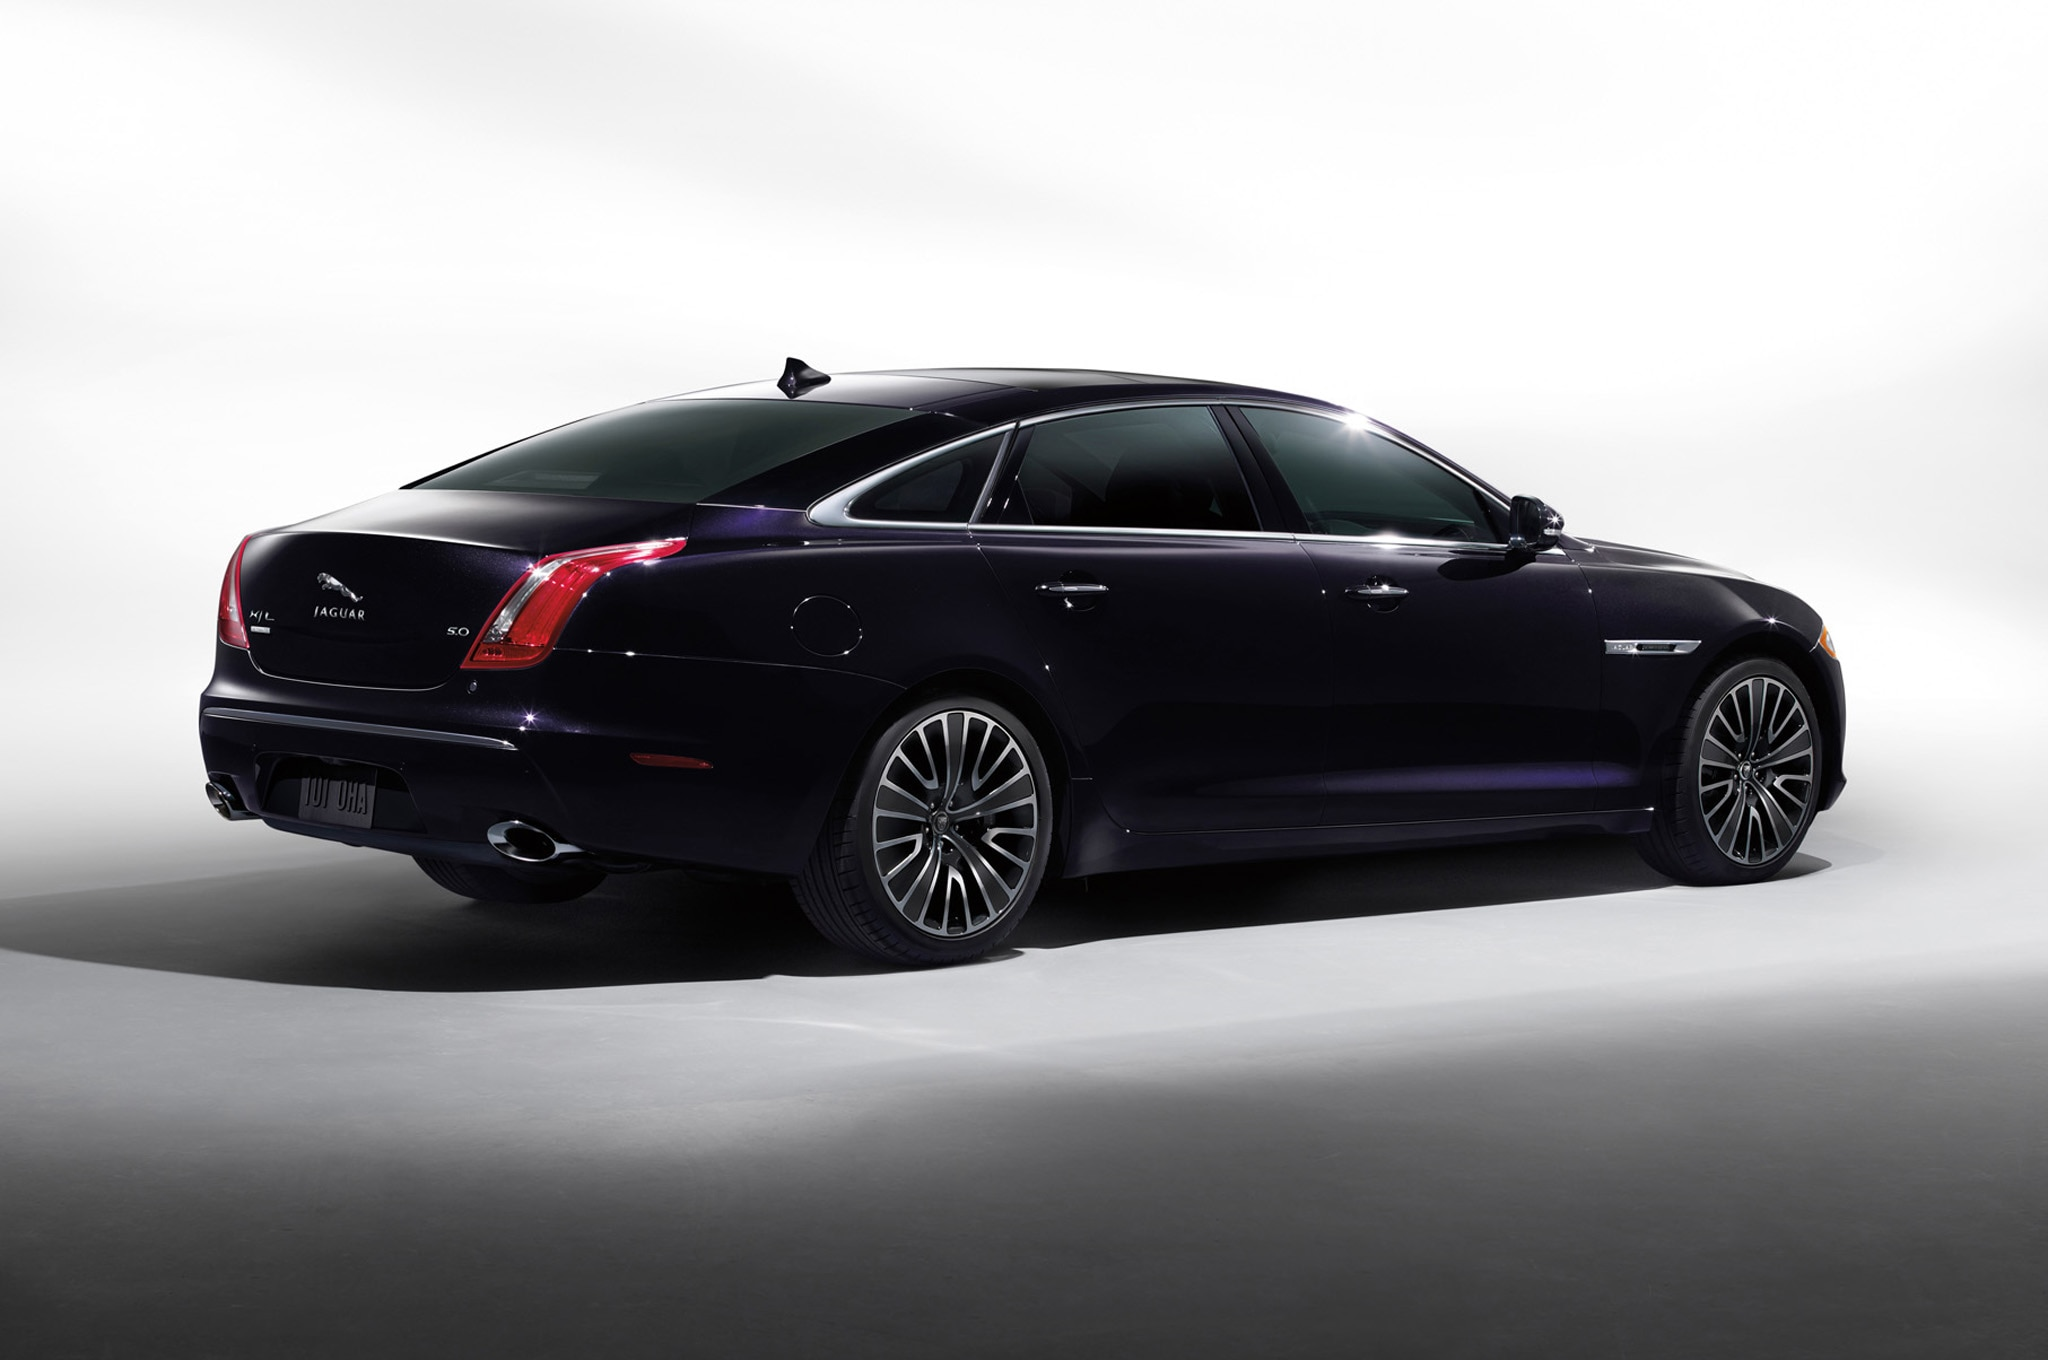 2013 jaguar xj 3 0 awd driven automobile magazine. Black Bedroom Furniture Sets. Home Design Ideas